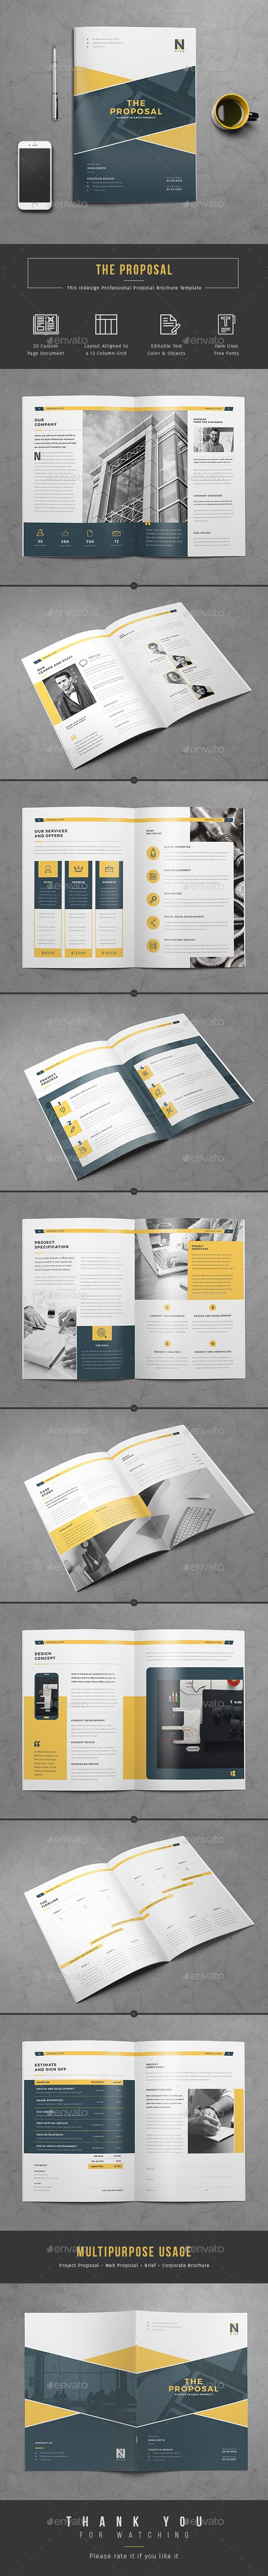 20 Pages Professional Business Proposal Template InDesign INDD. Download here: http://graphicriver.net/item/proposal/15695113?ref=ksioks